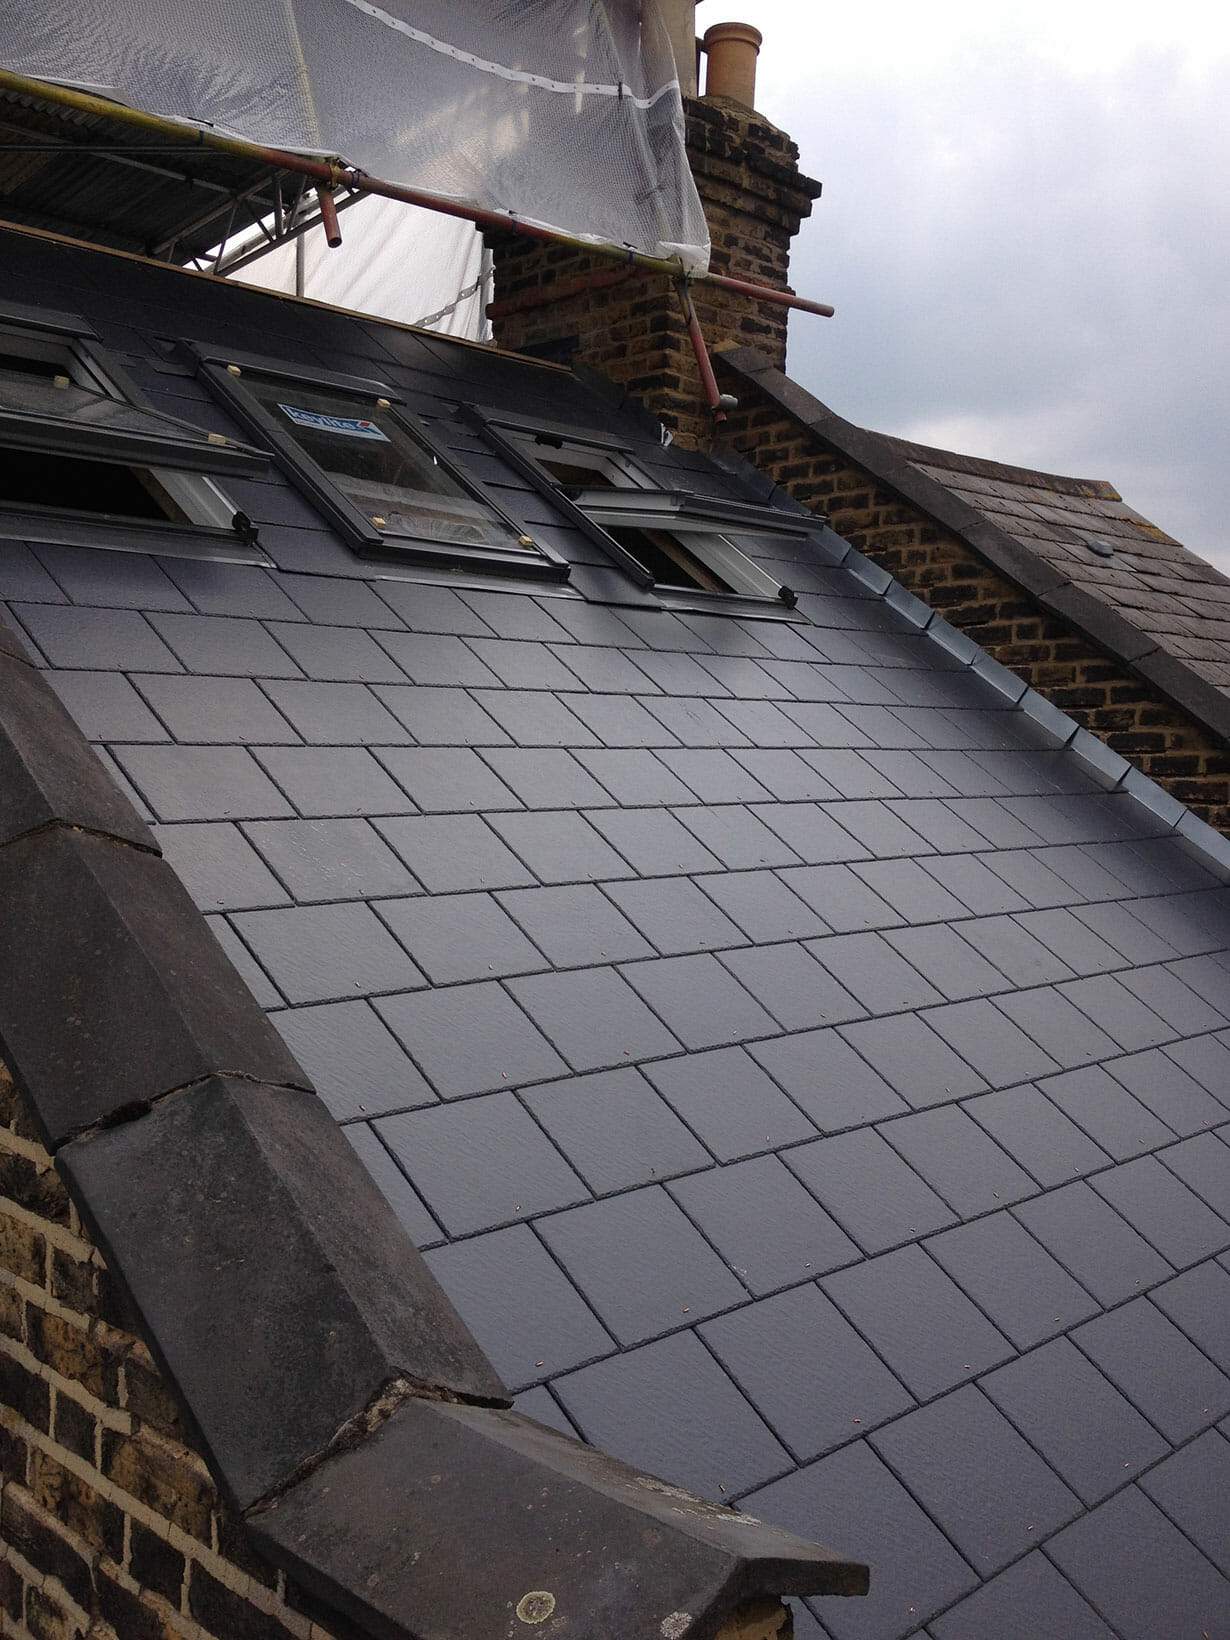 Skylights and roofing tiles